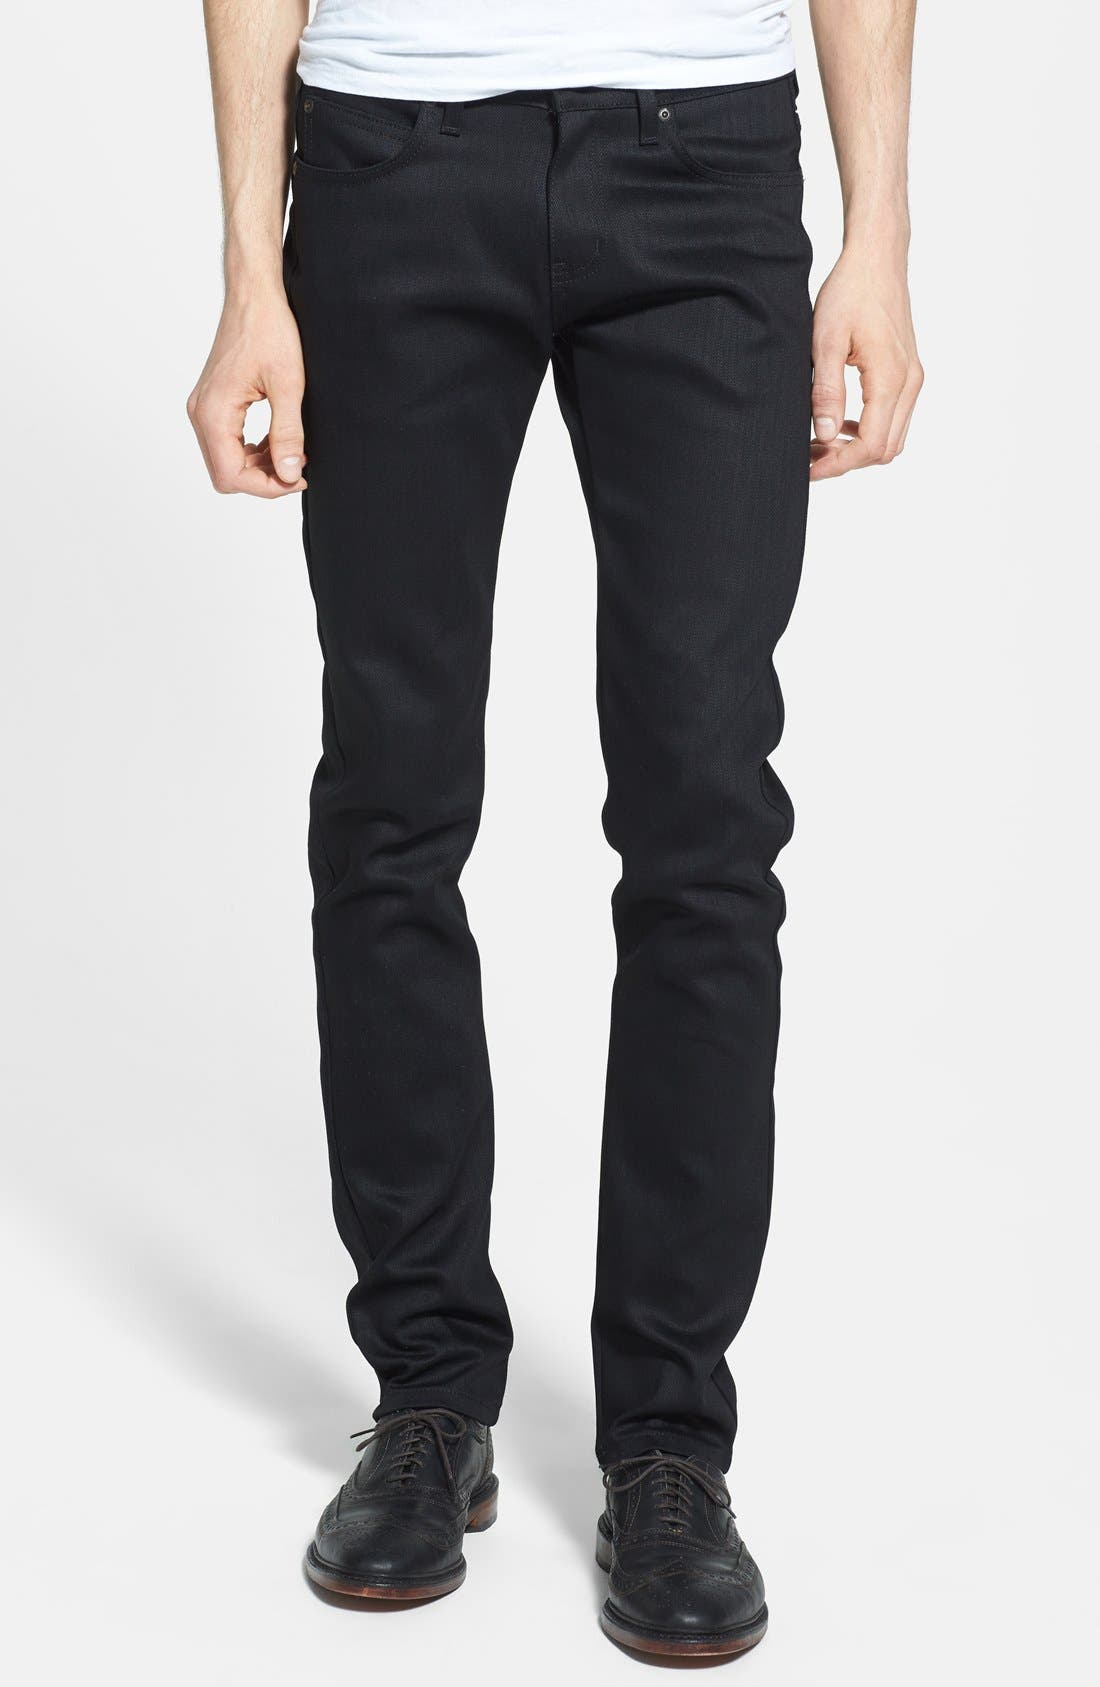 'Super Skinny Guy' Skinny Fit Raw Jeans,                             Main thumbnail 1, color,                             BLACK POWER STRETCH